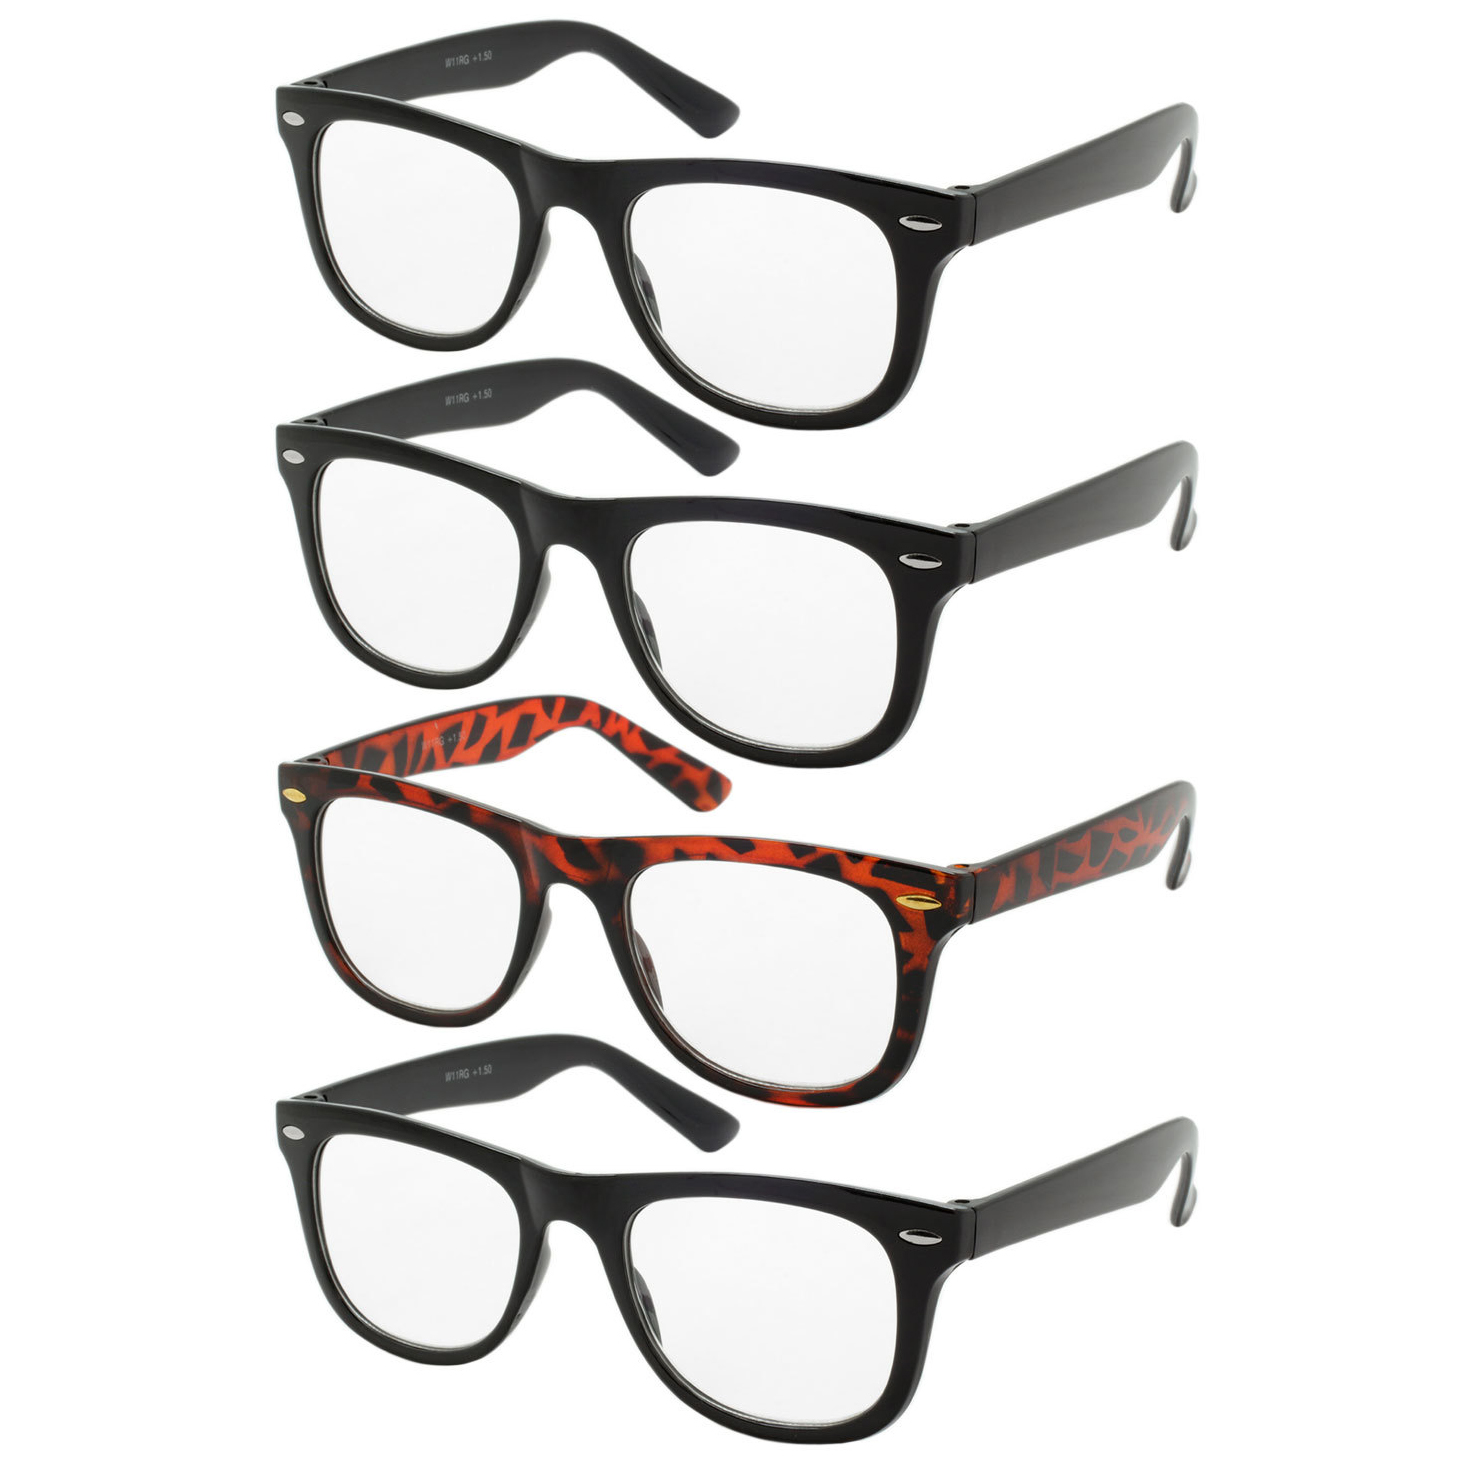 4 Pairs Reading Glasses, Spring Hinge Readers, Men's and Women's + Strength, Power Pack